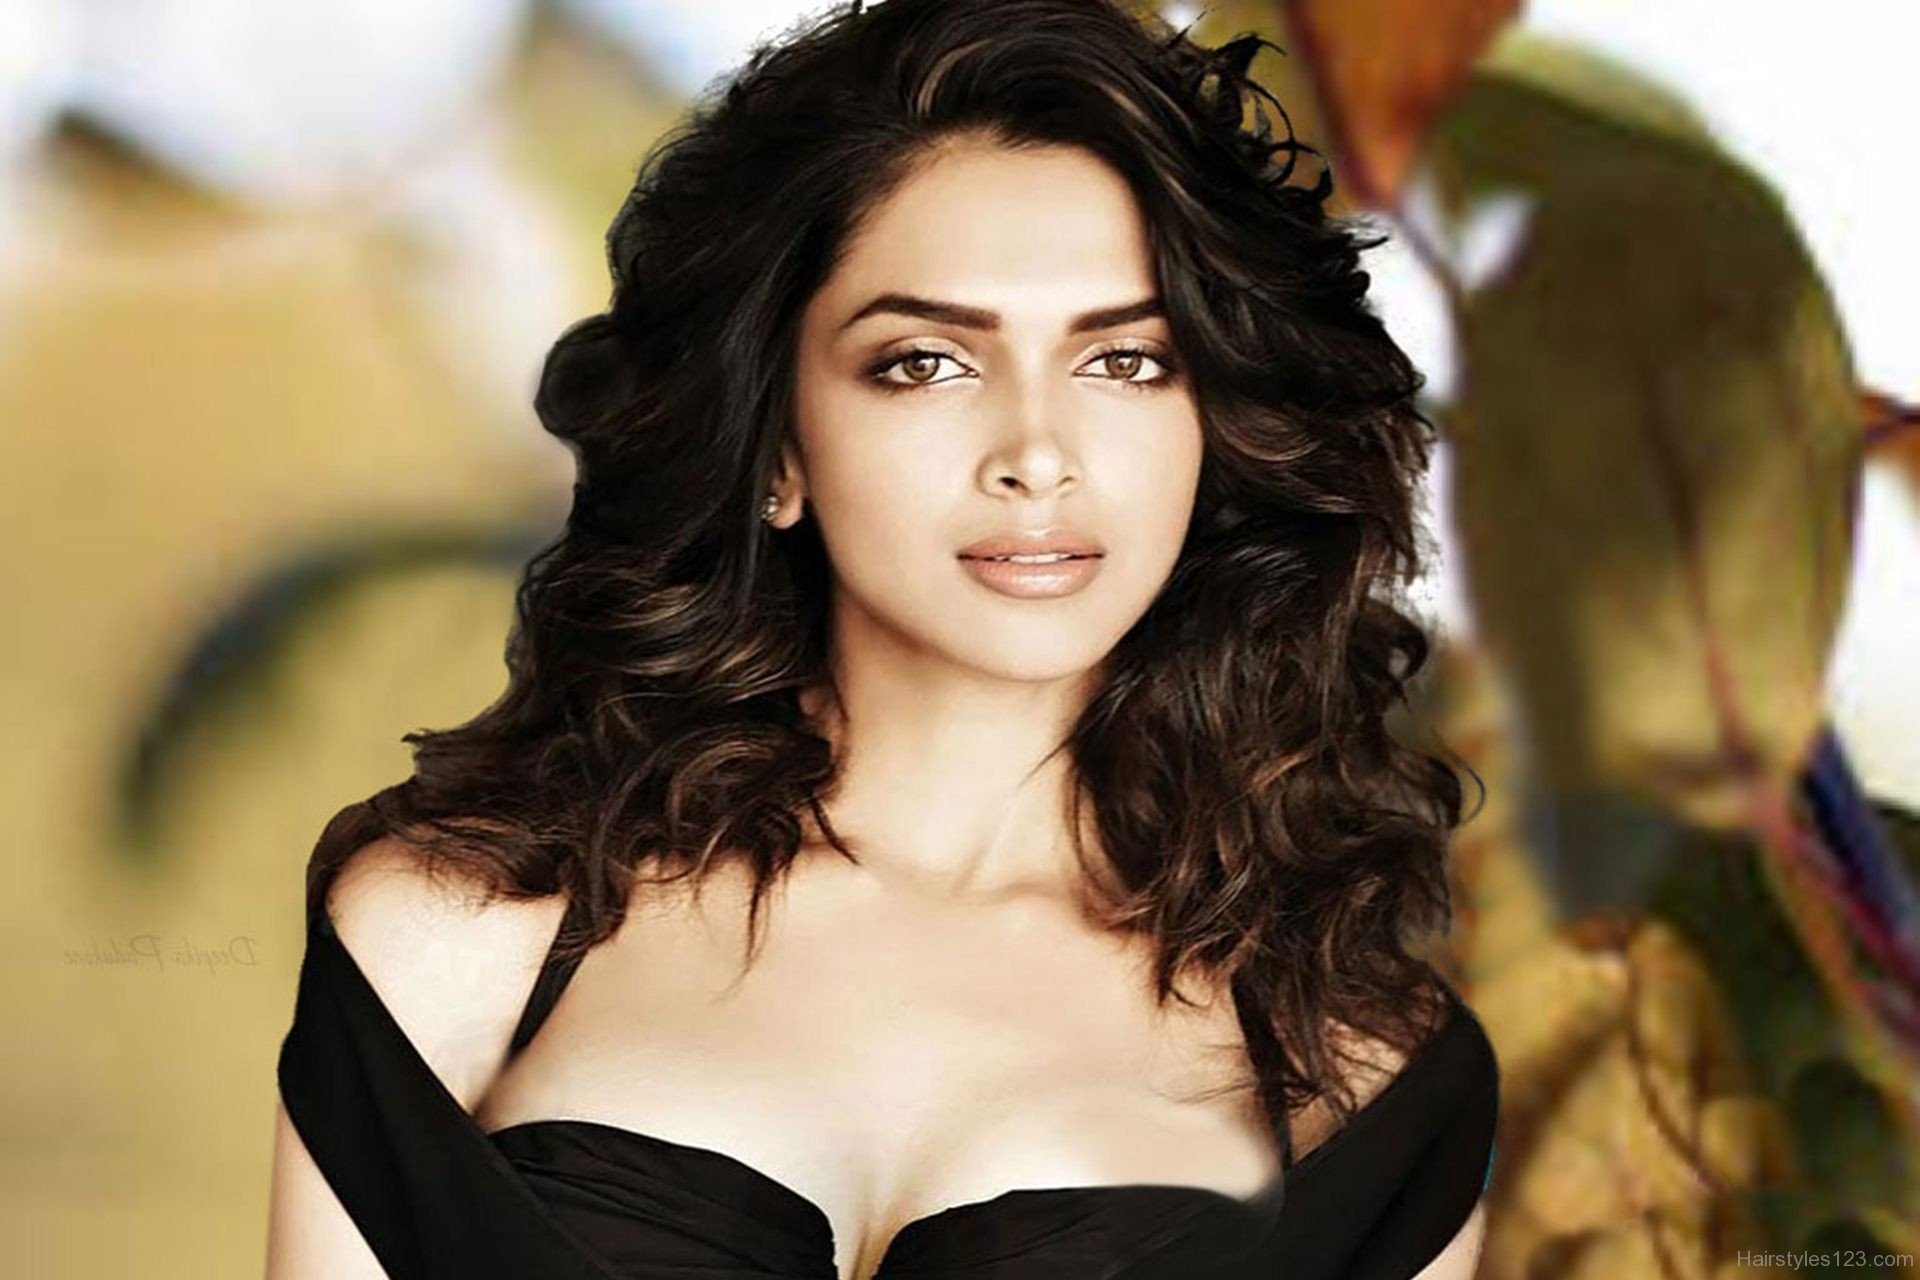 Hairstyles Inspired By Deepika Padukone_Stunning Curls For Parties